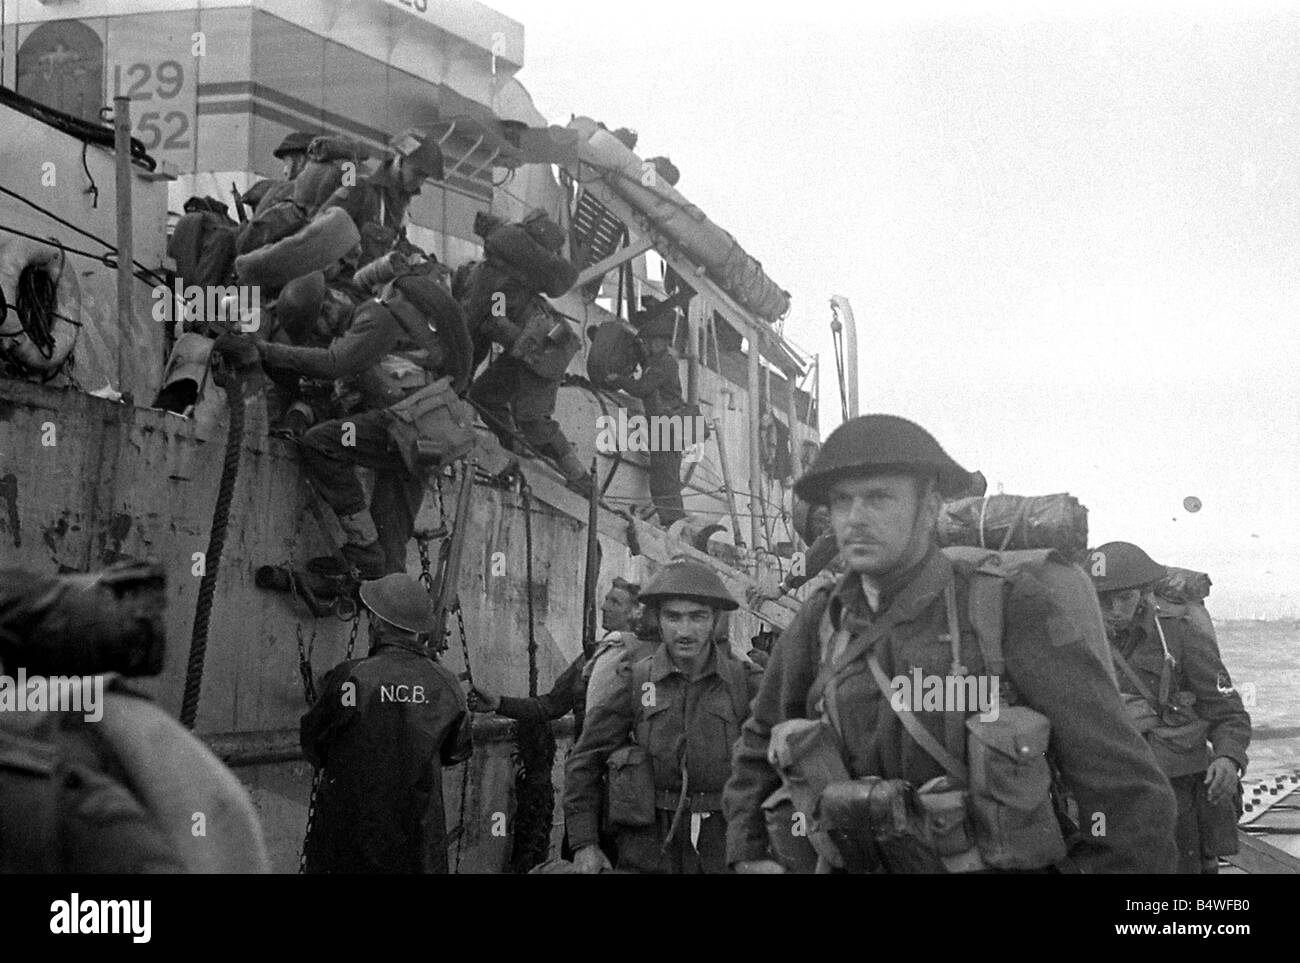 Gold Beach 1944 High Resolution Stock Photography and Images - Alamy